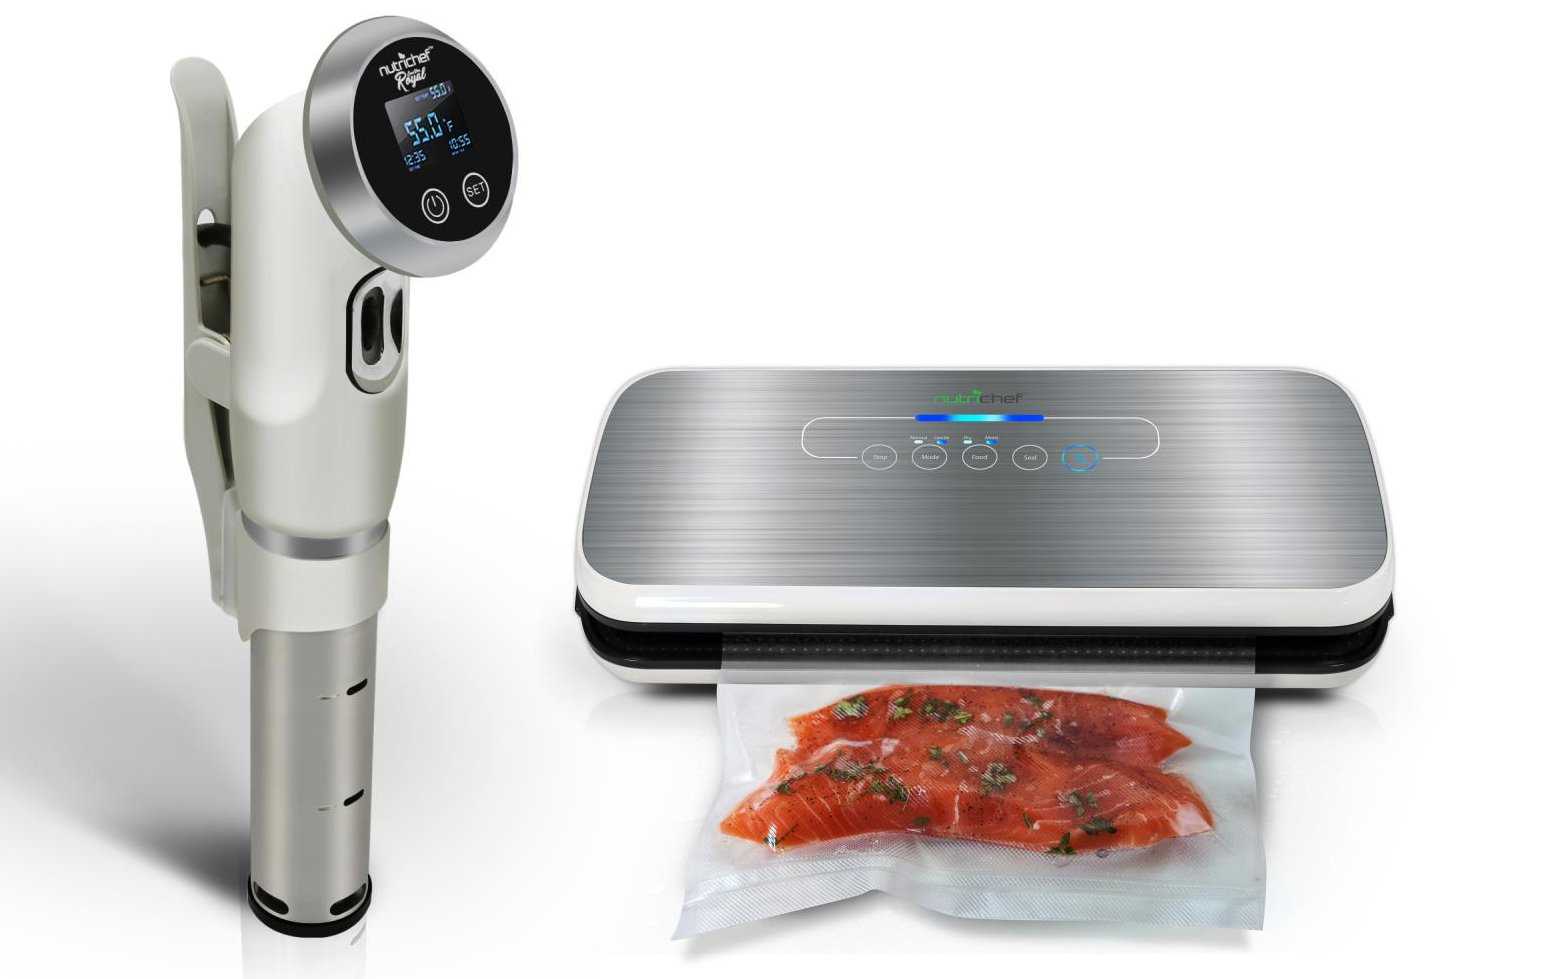 Nutrichef Sous Vide Immersion Circulator Cooker Thermal-Durable Stainless Steel Stick Strong Handle & Temperature Control W/ Vacuum Sealer | Automatic Vacuum Air Sealing System For Food Preservation